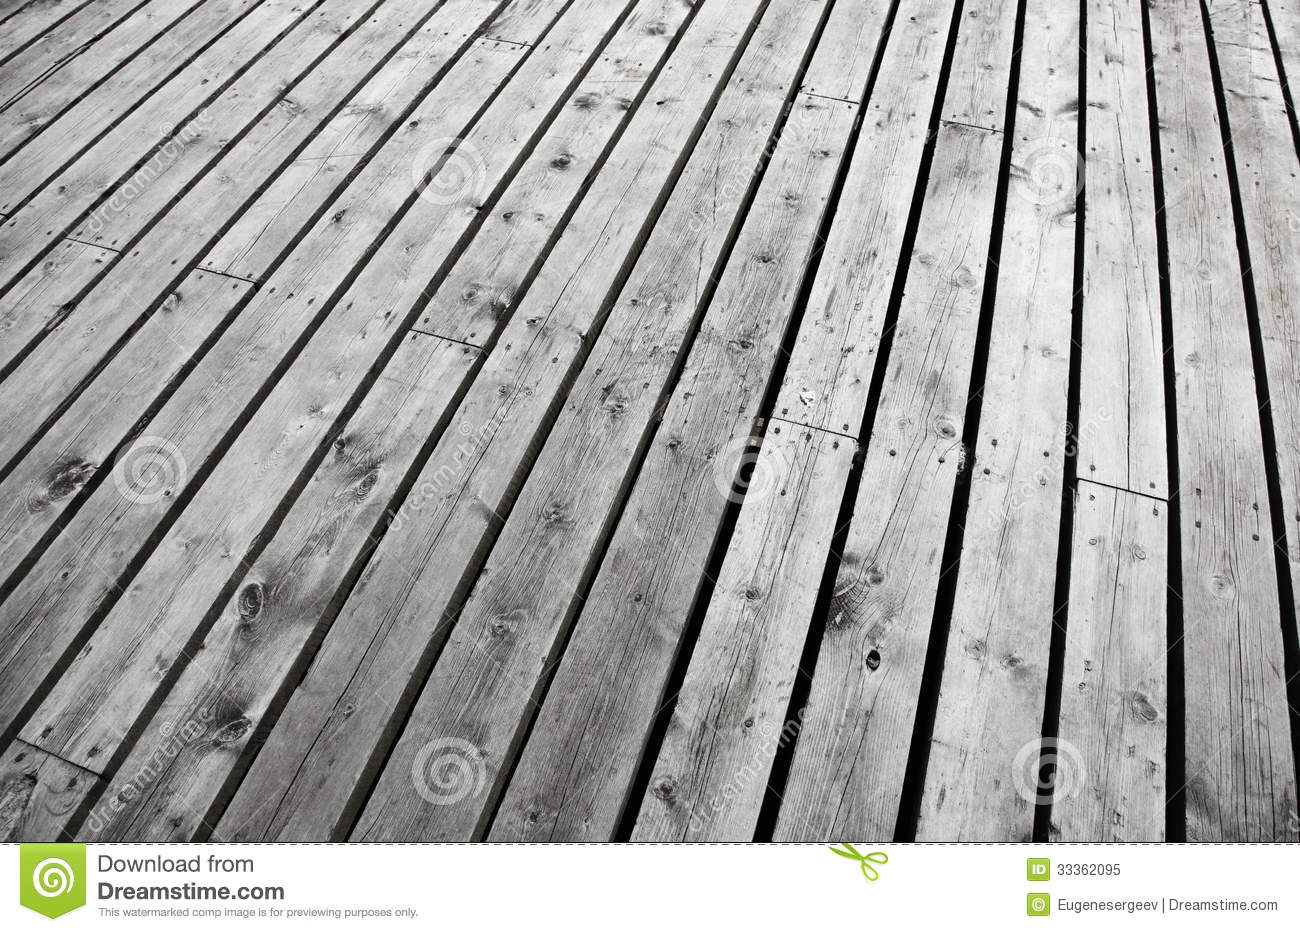 Outdoor White Wooden Floor Royalty Free Stock Photo - Image: 33362095